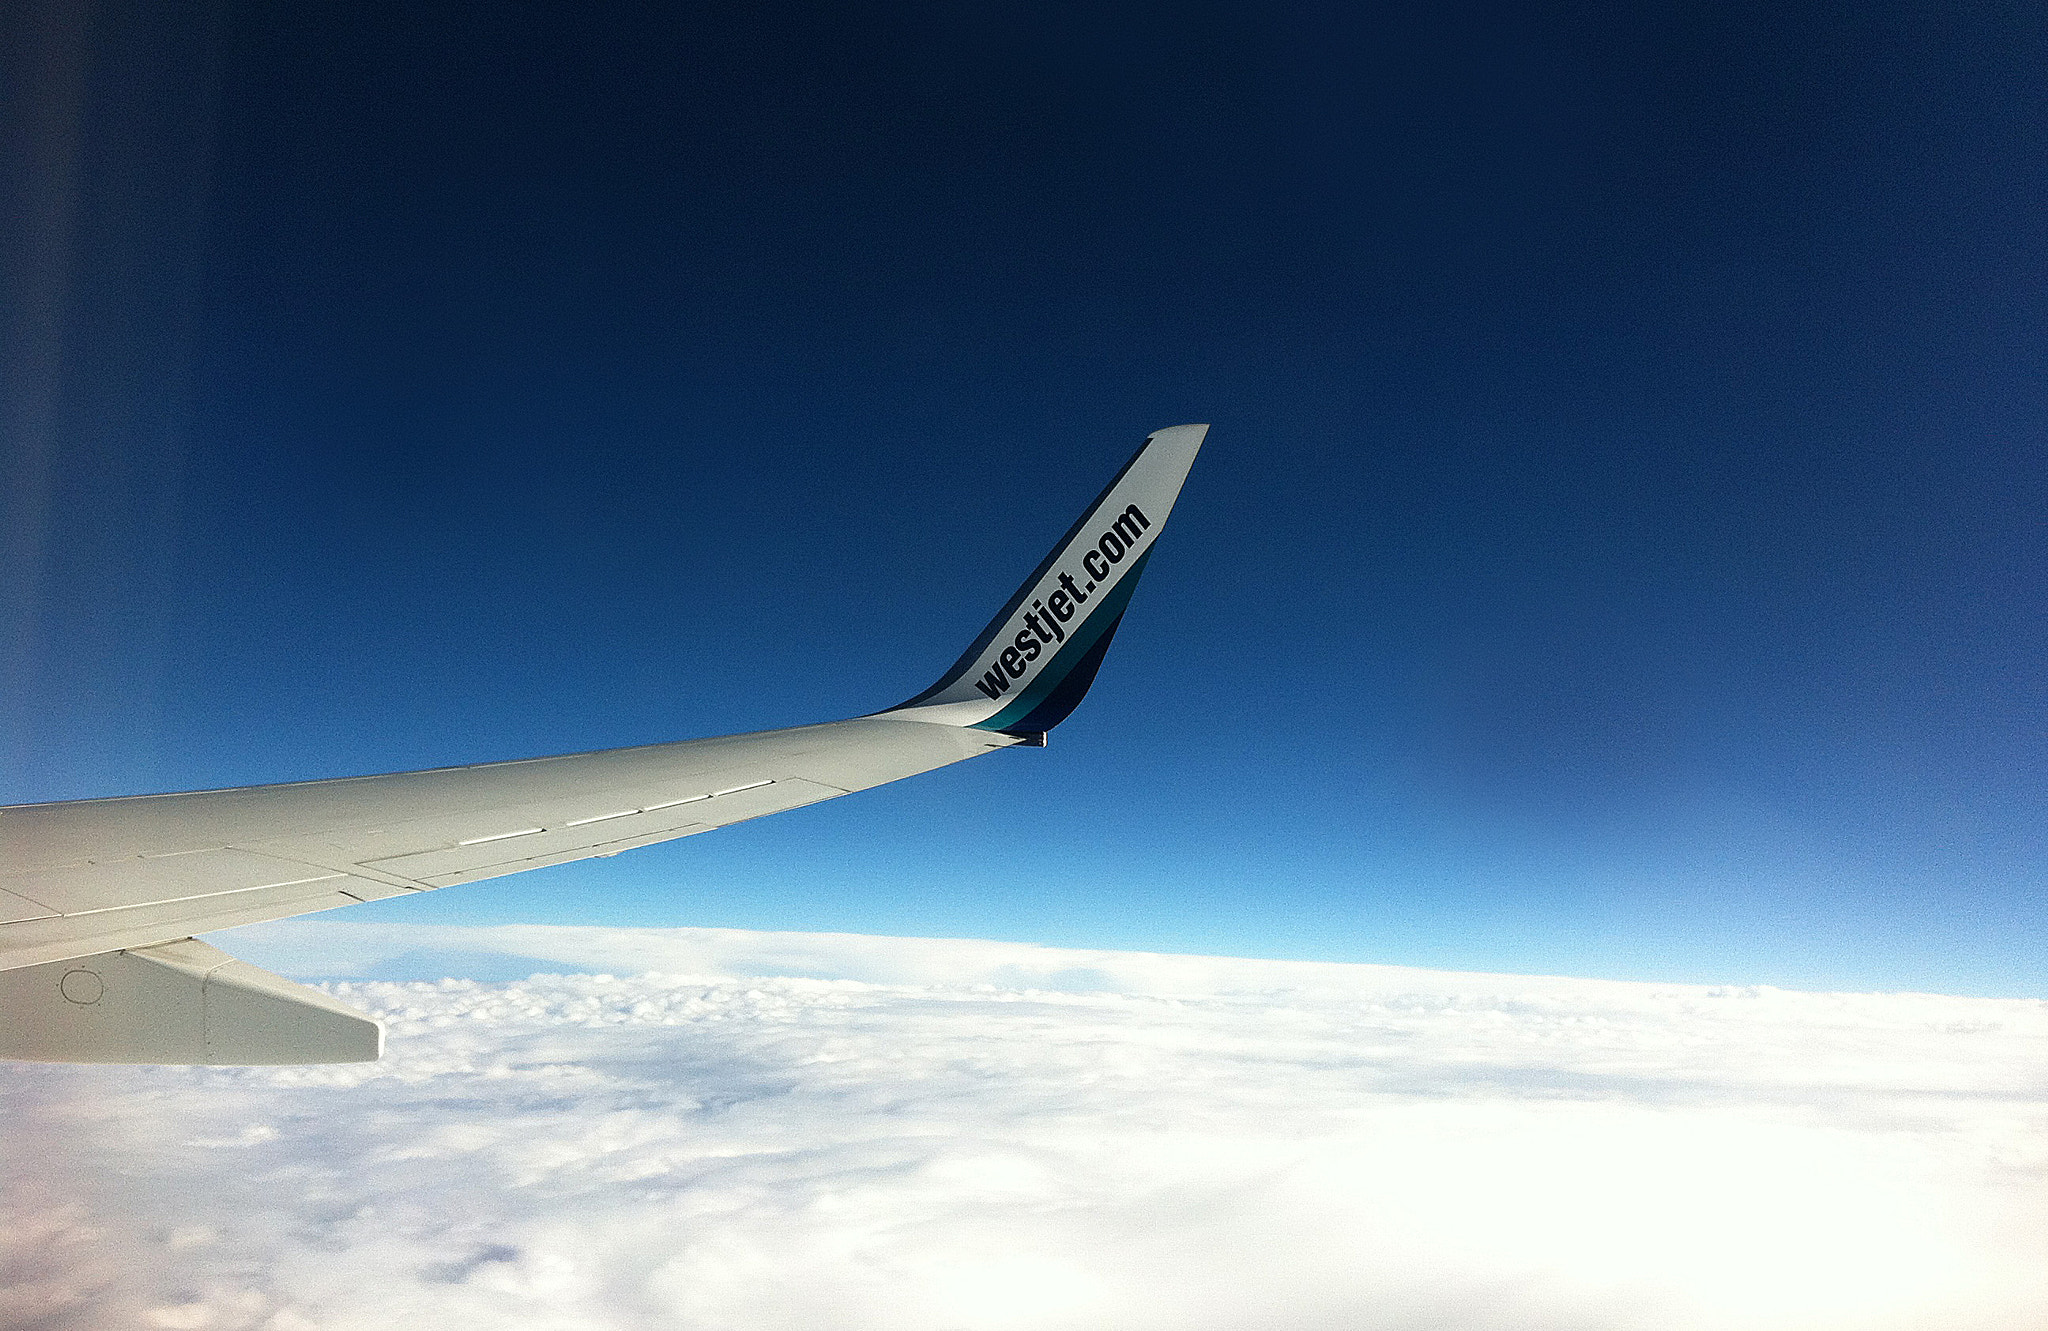 Photograph Advertising @ 39,000 ft by Anura Fernando on 500px